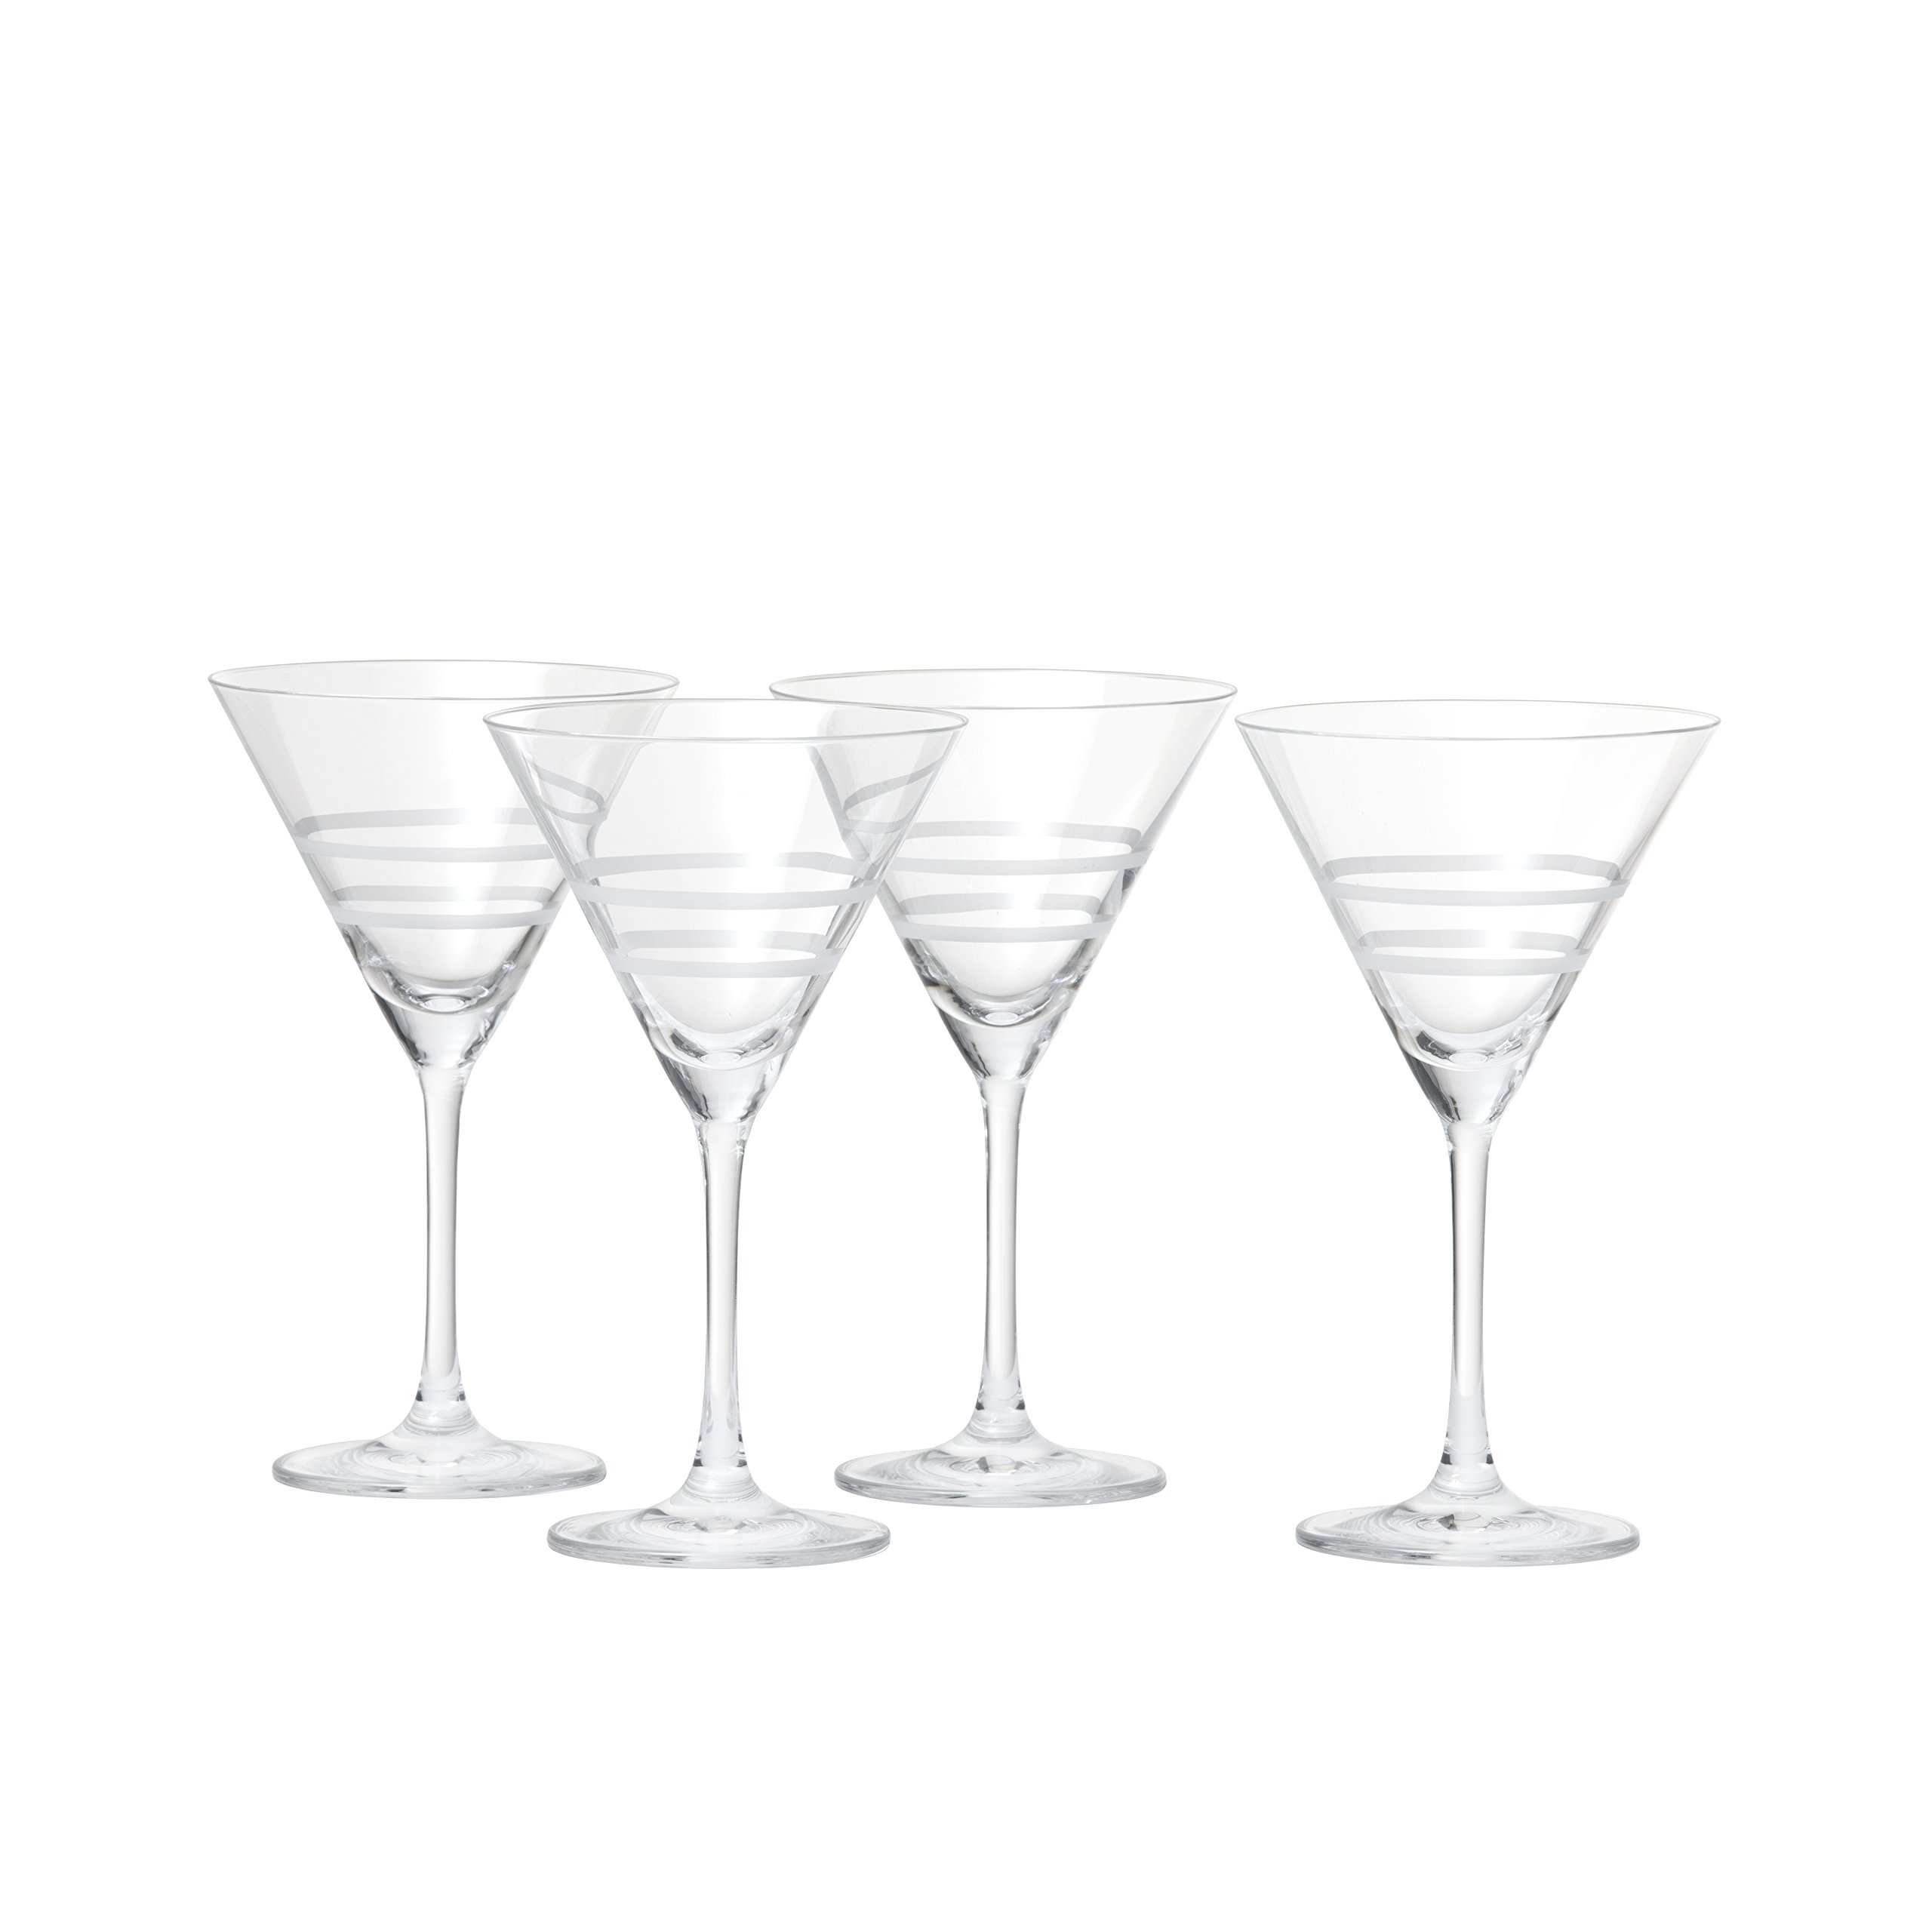 Crafthouse by Fortessa Professional Barware by Charles Joly, Etched Schott Zwiesel Tritan 8.6 oz Martini Barware/Cocktail Glass, Set of 4